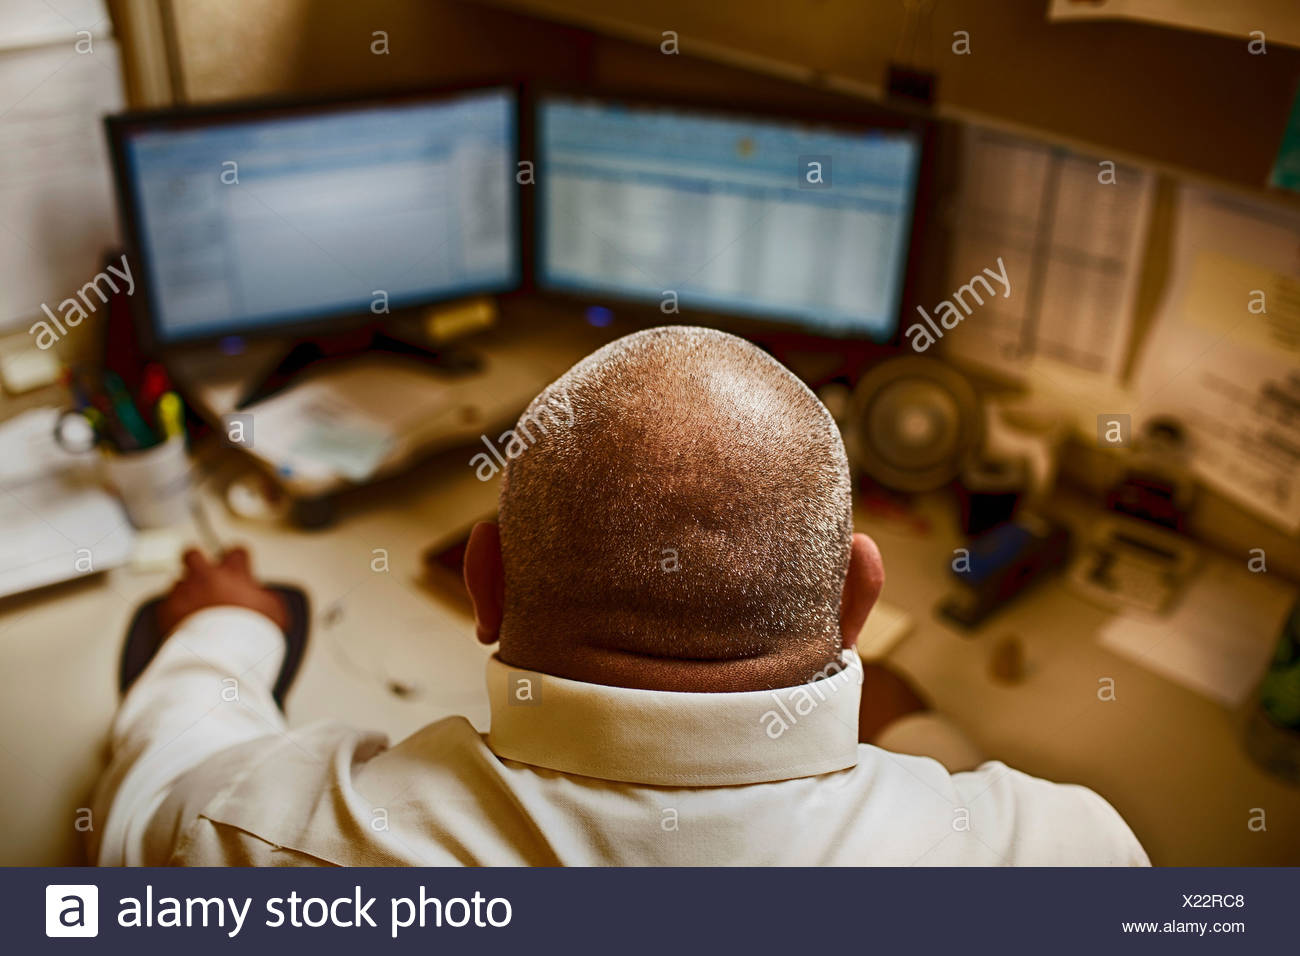 Mature man working in control room of manufacturing plant - Stock Image